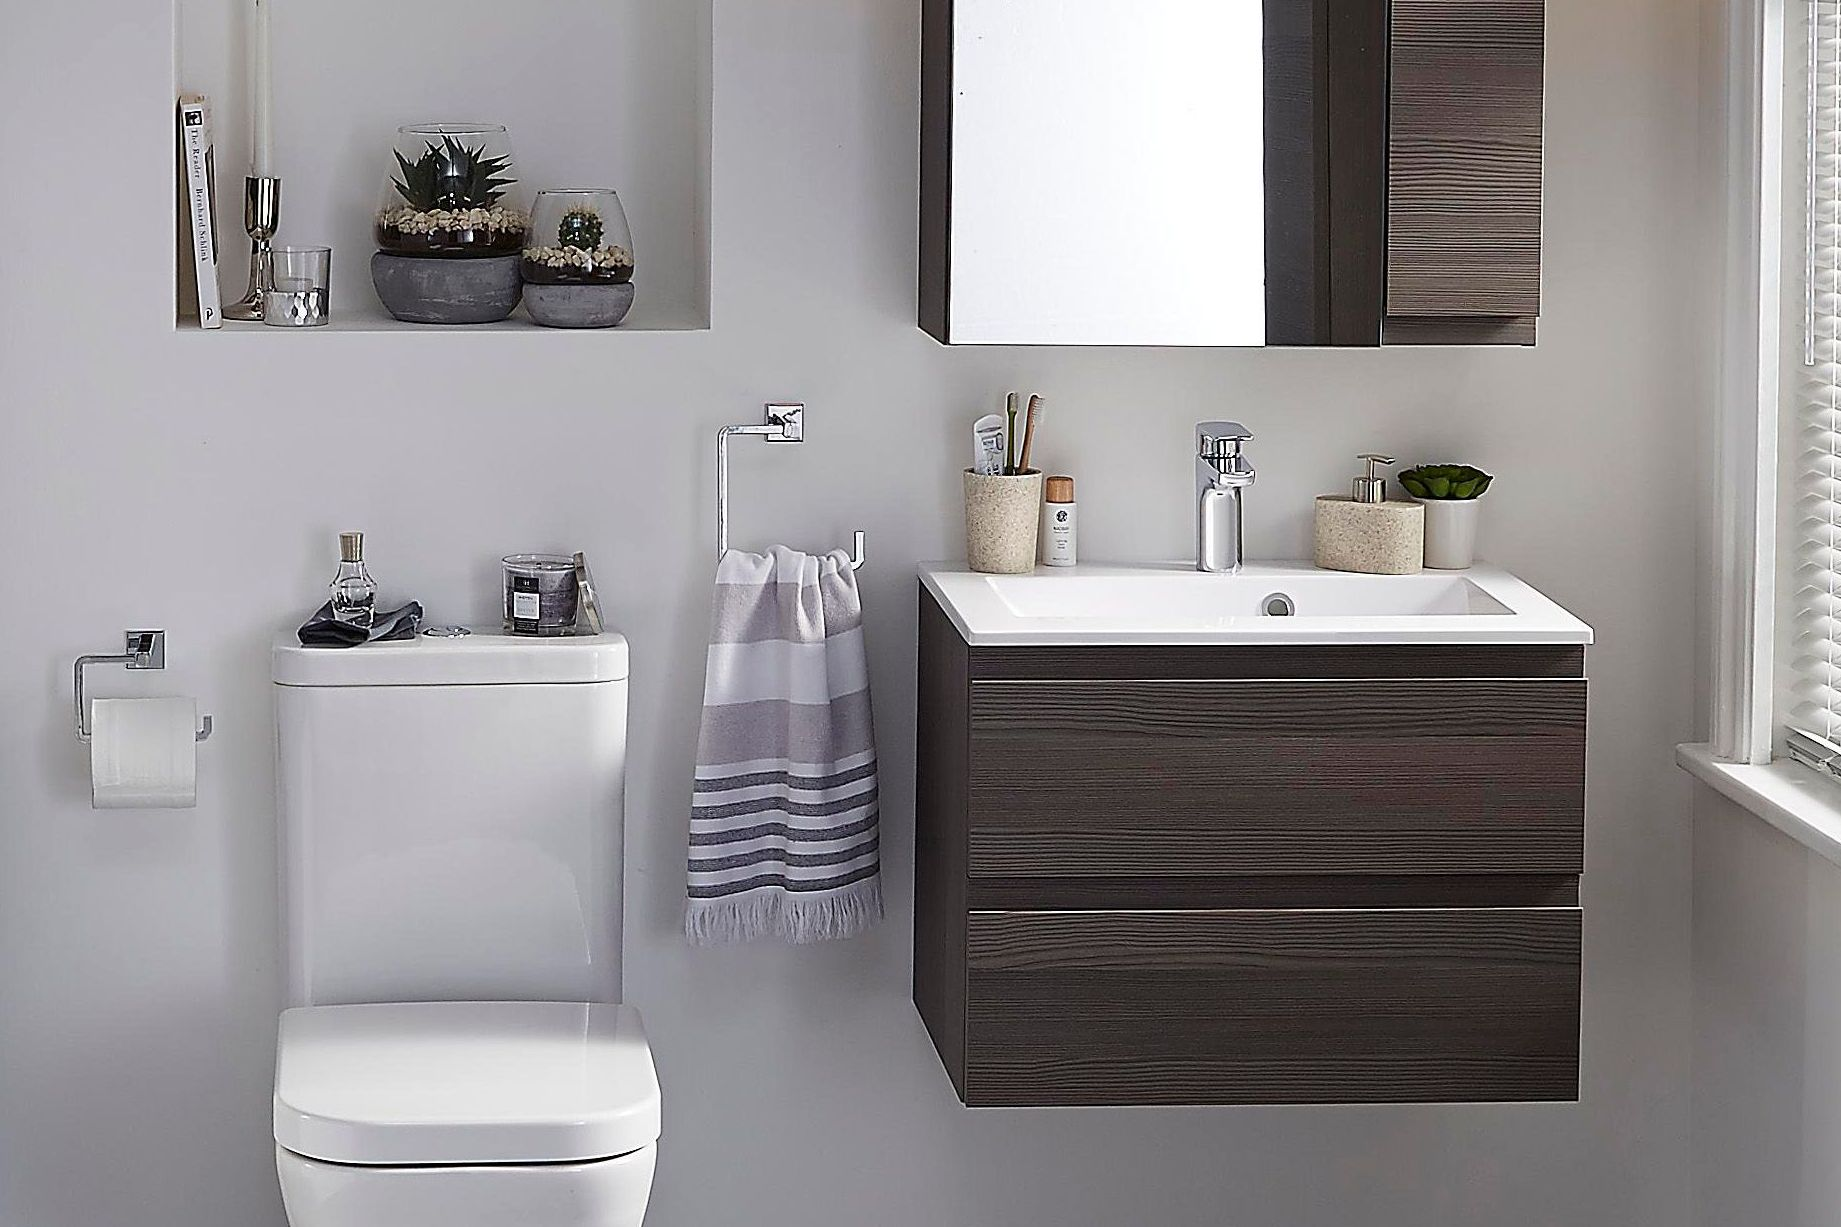 Small bathroom ideas | Ideas & Advice | DIY at B&Q